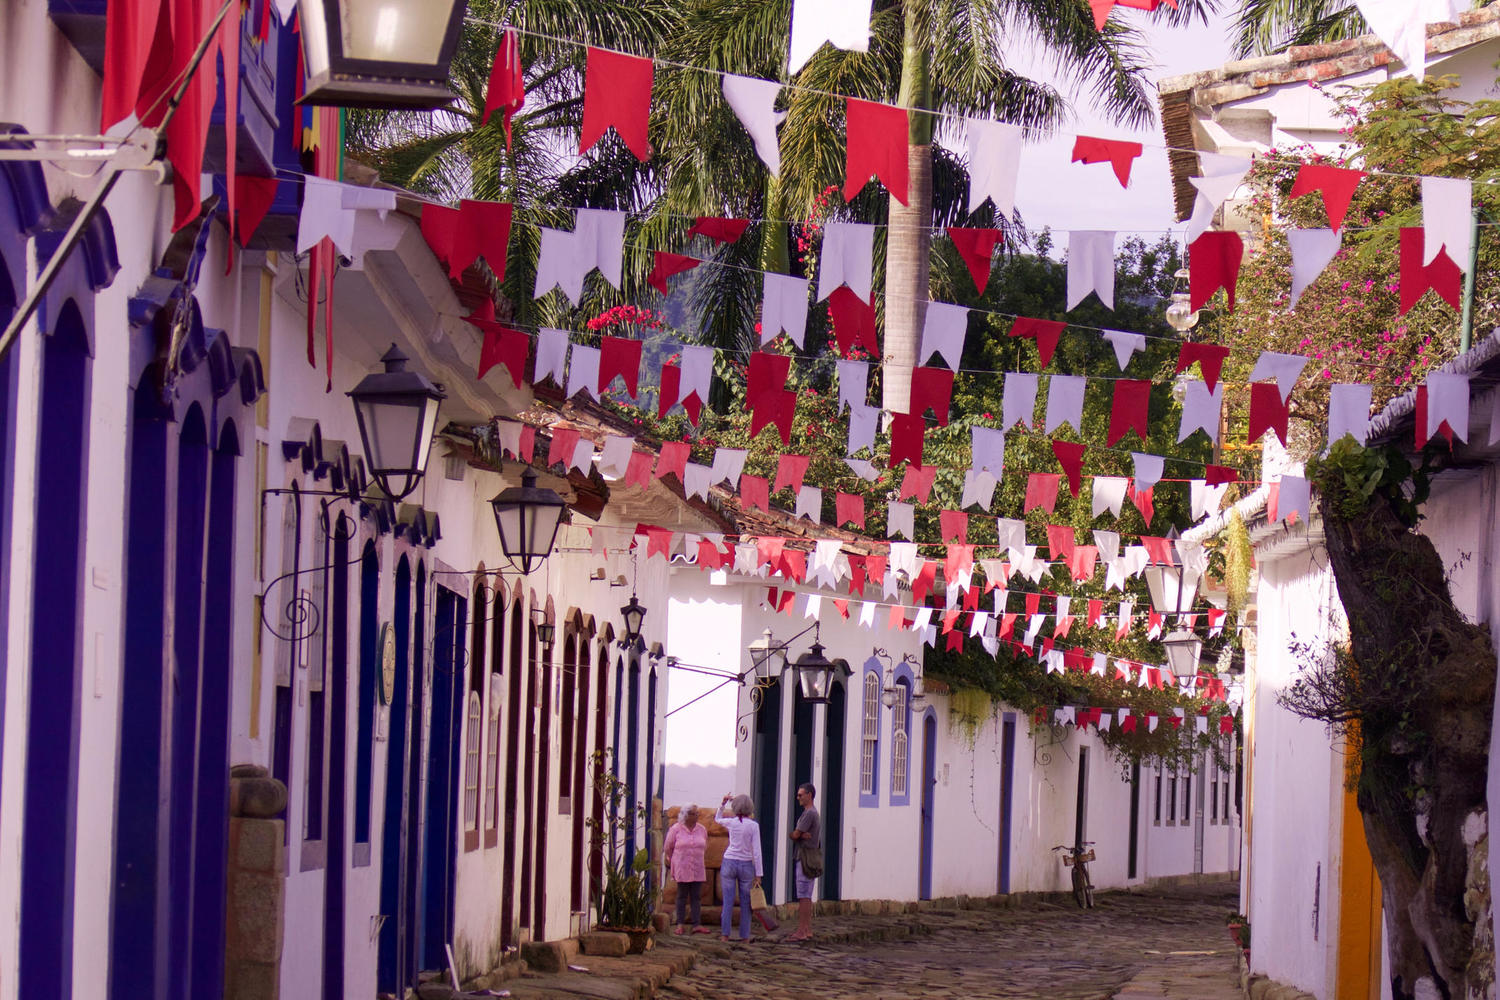 Street with bunting in Paraty